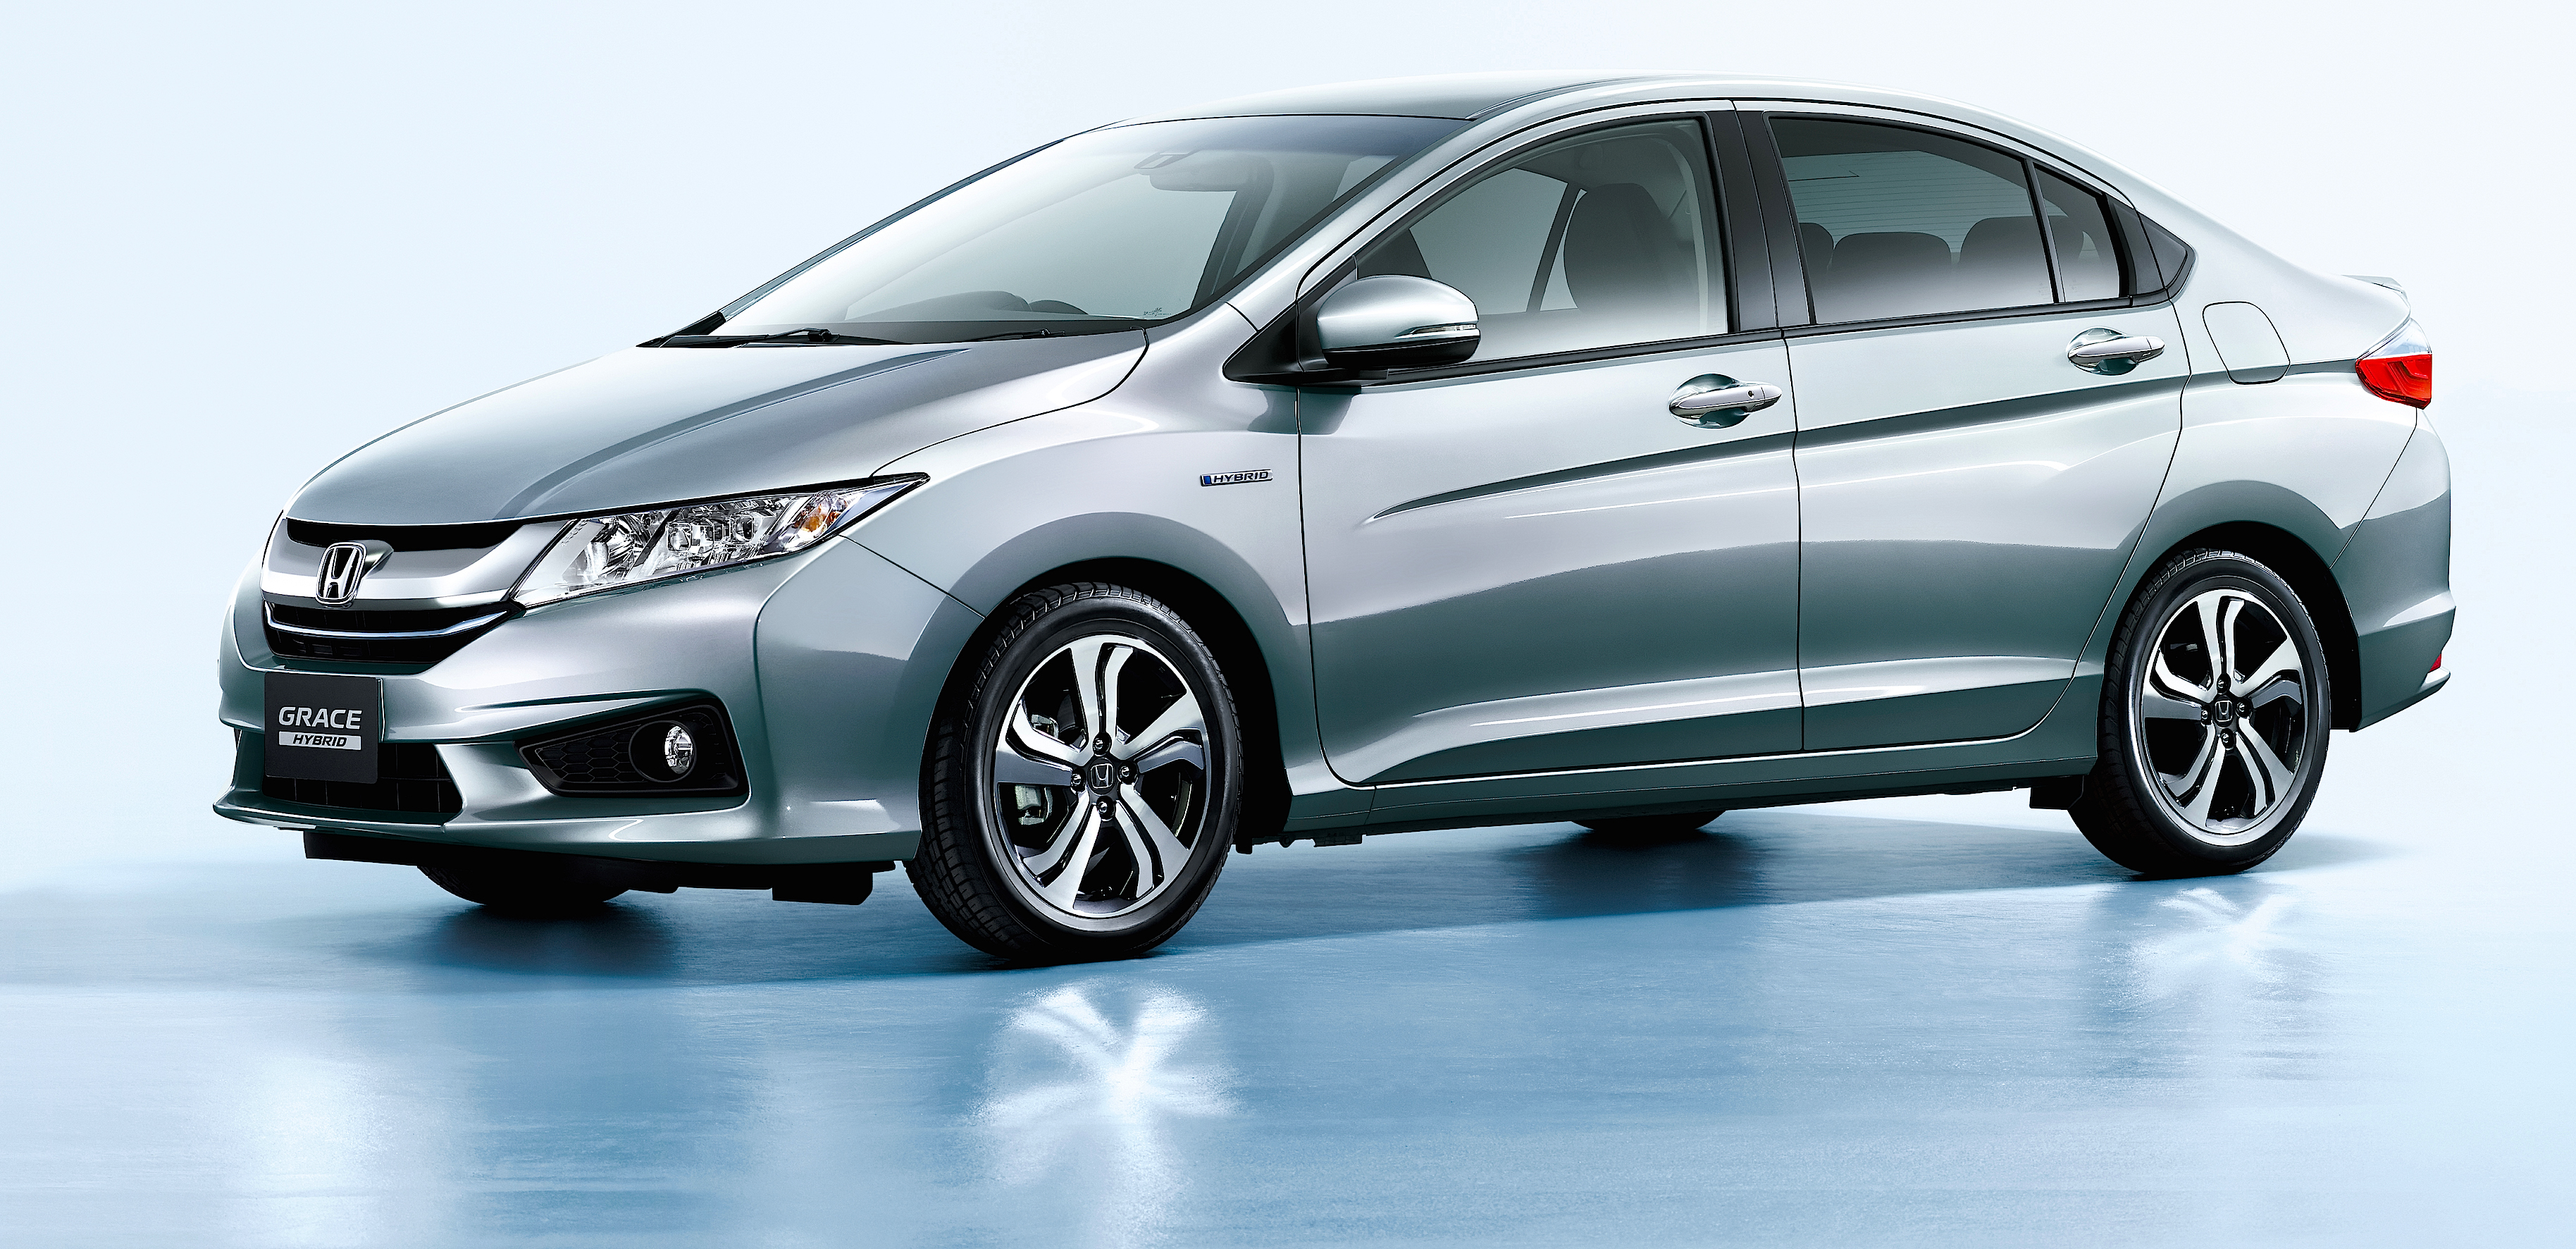 Grace and City are based on the Honda Fit. That means either could be ...